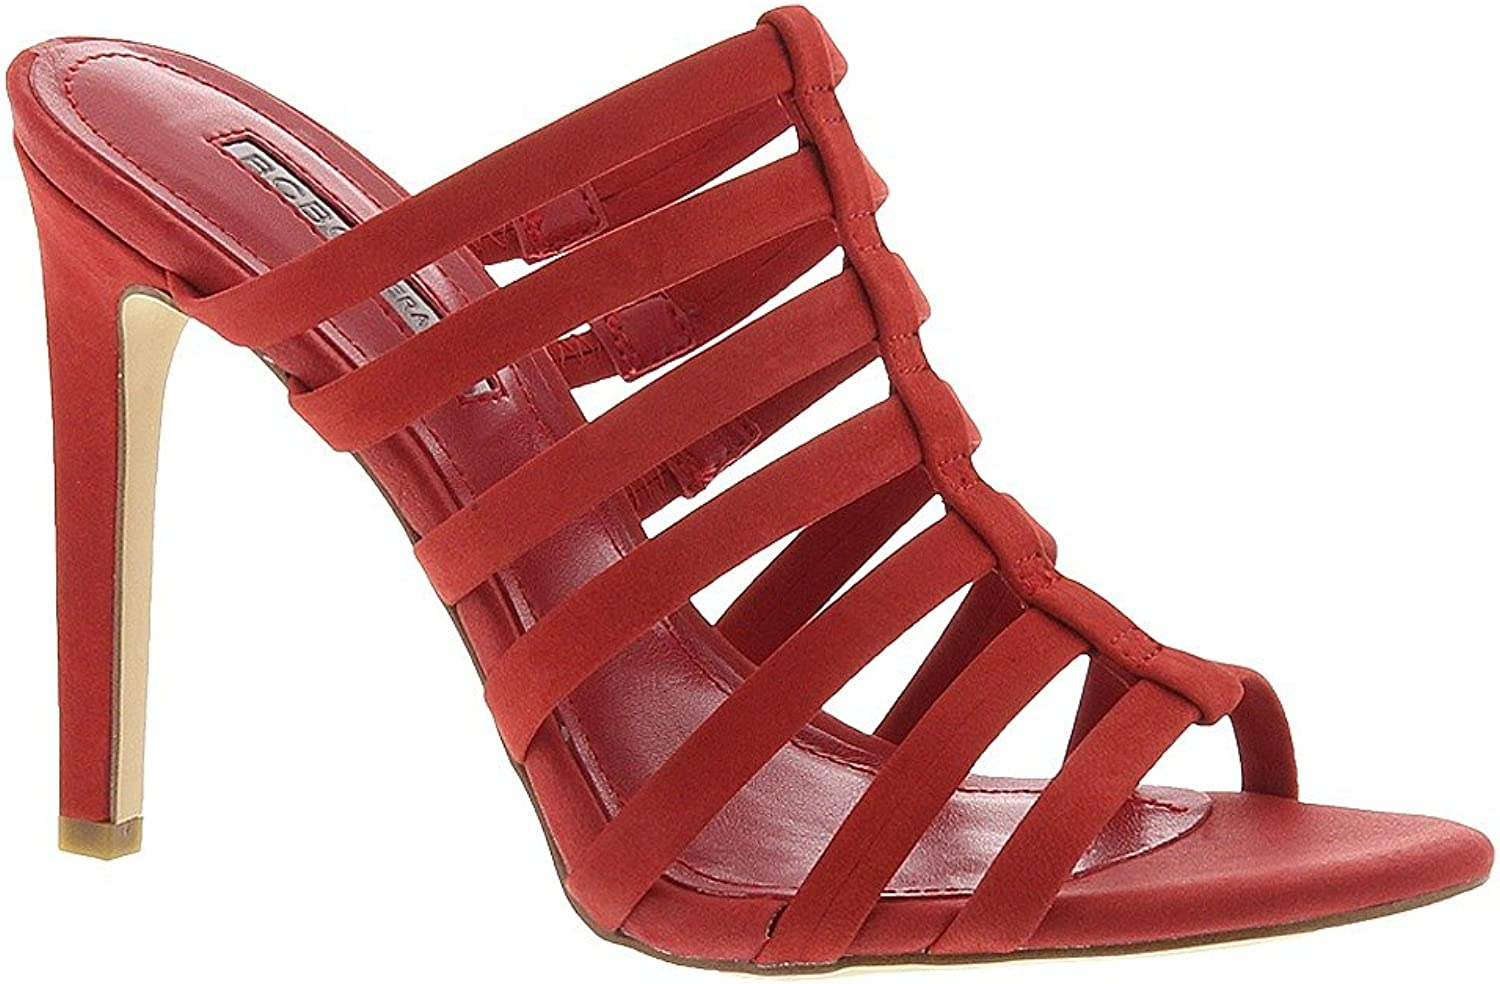 BCBGeneration Callie Women's Sandal 7.5 B(M) US Cherry-Nubuck Red